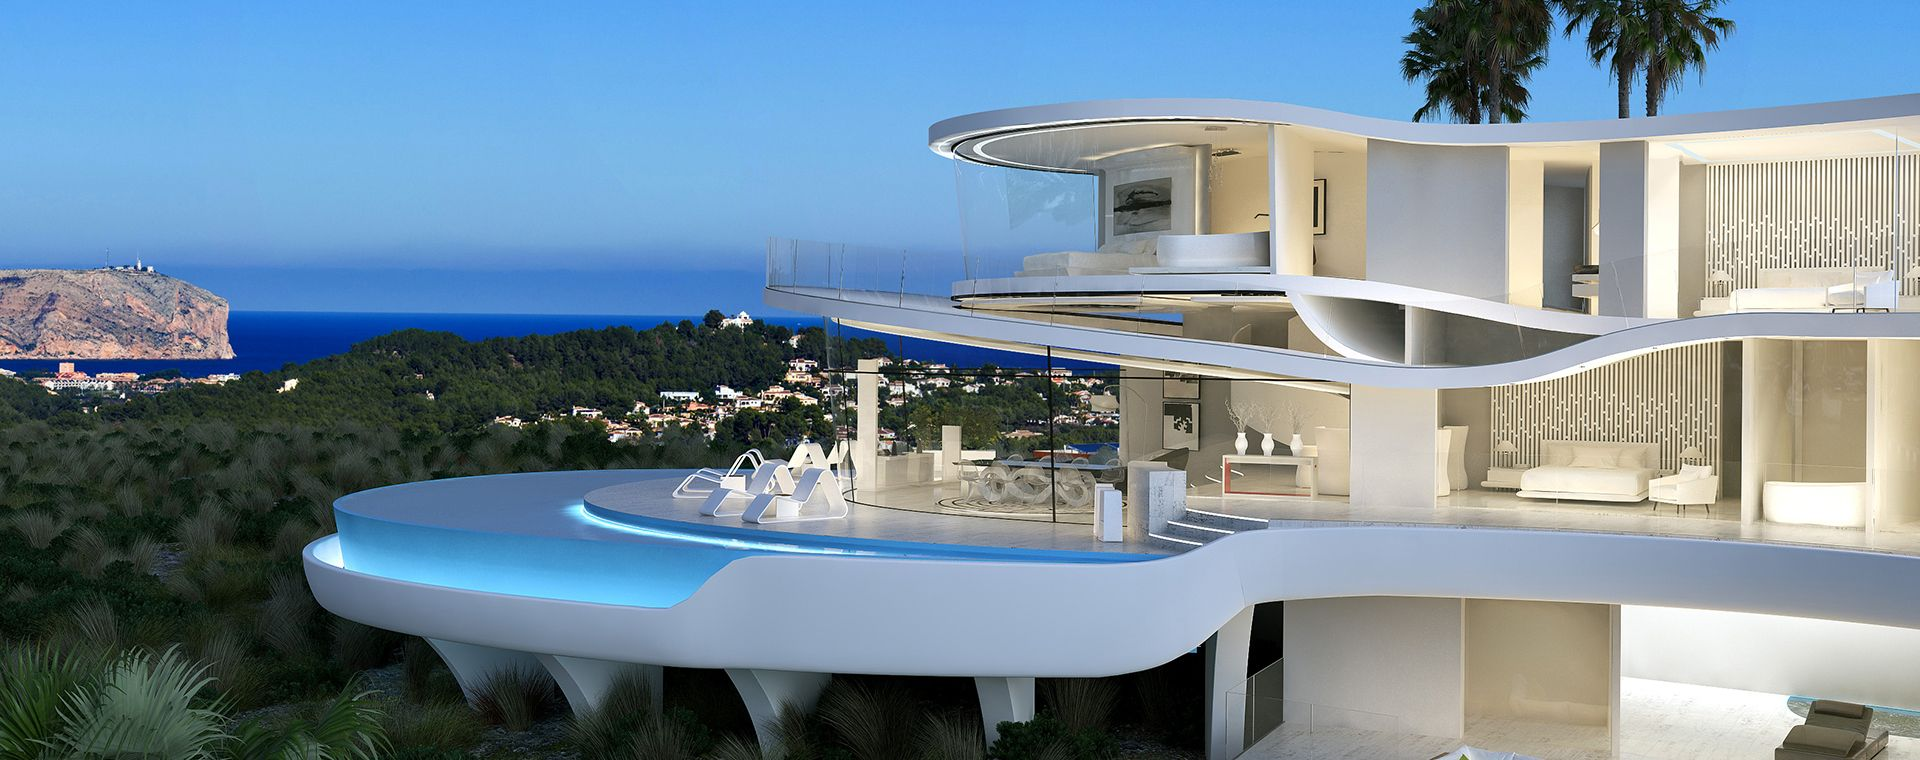 Luxury Villa Specialist on the Costa Blanca